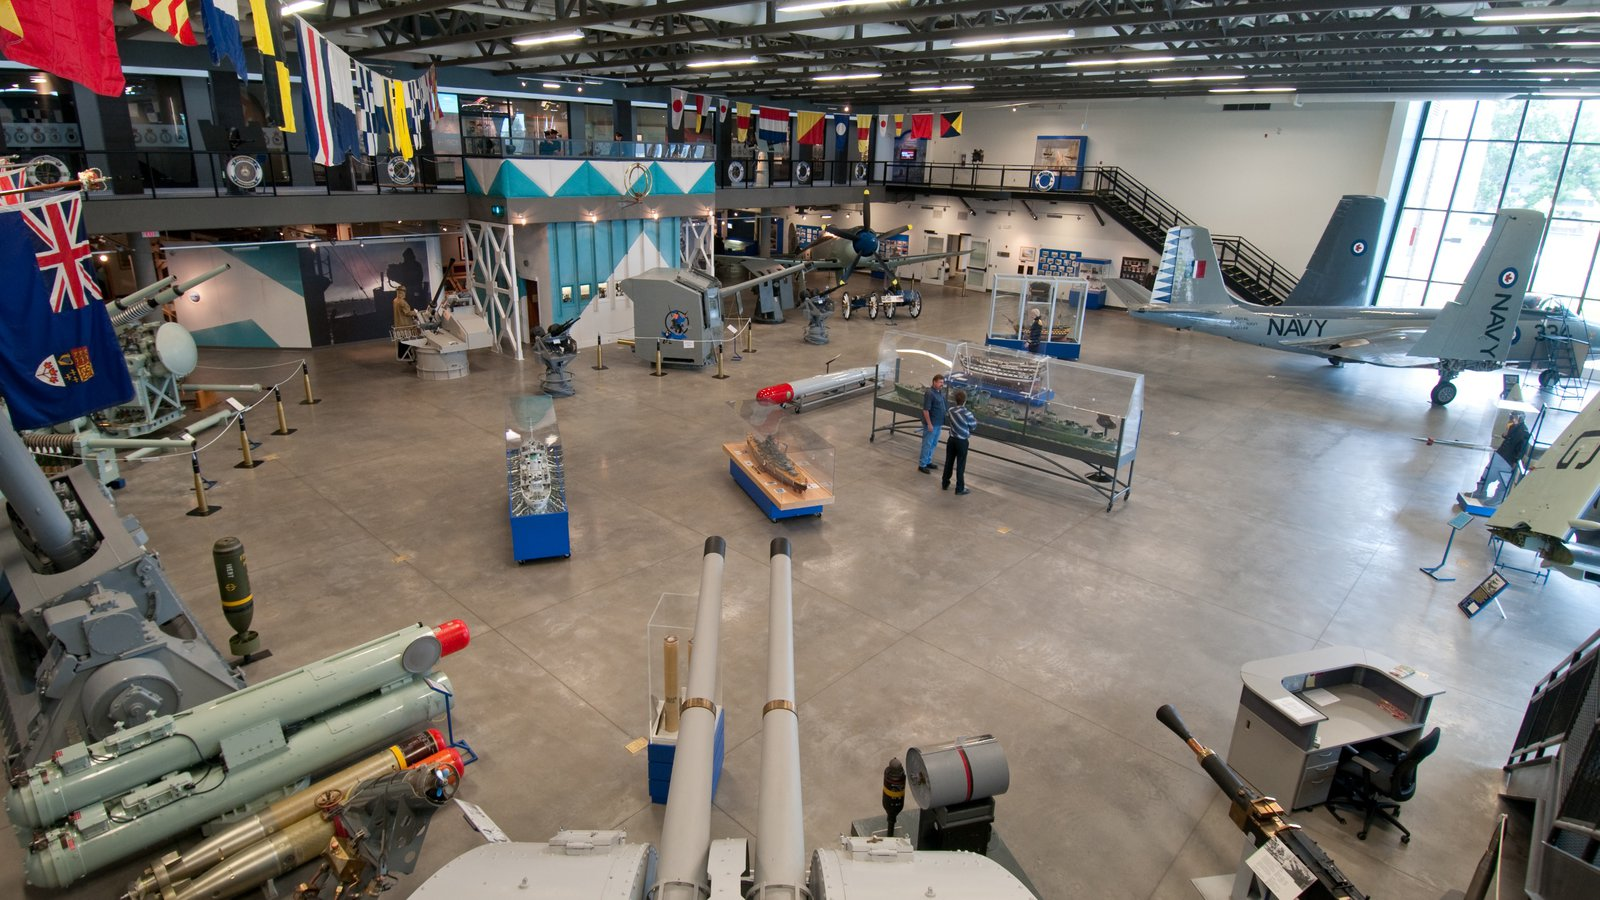 The Military Museums which includes aircraft, interior views and military items